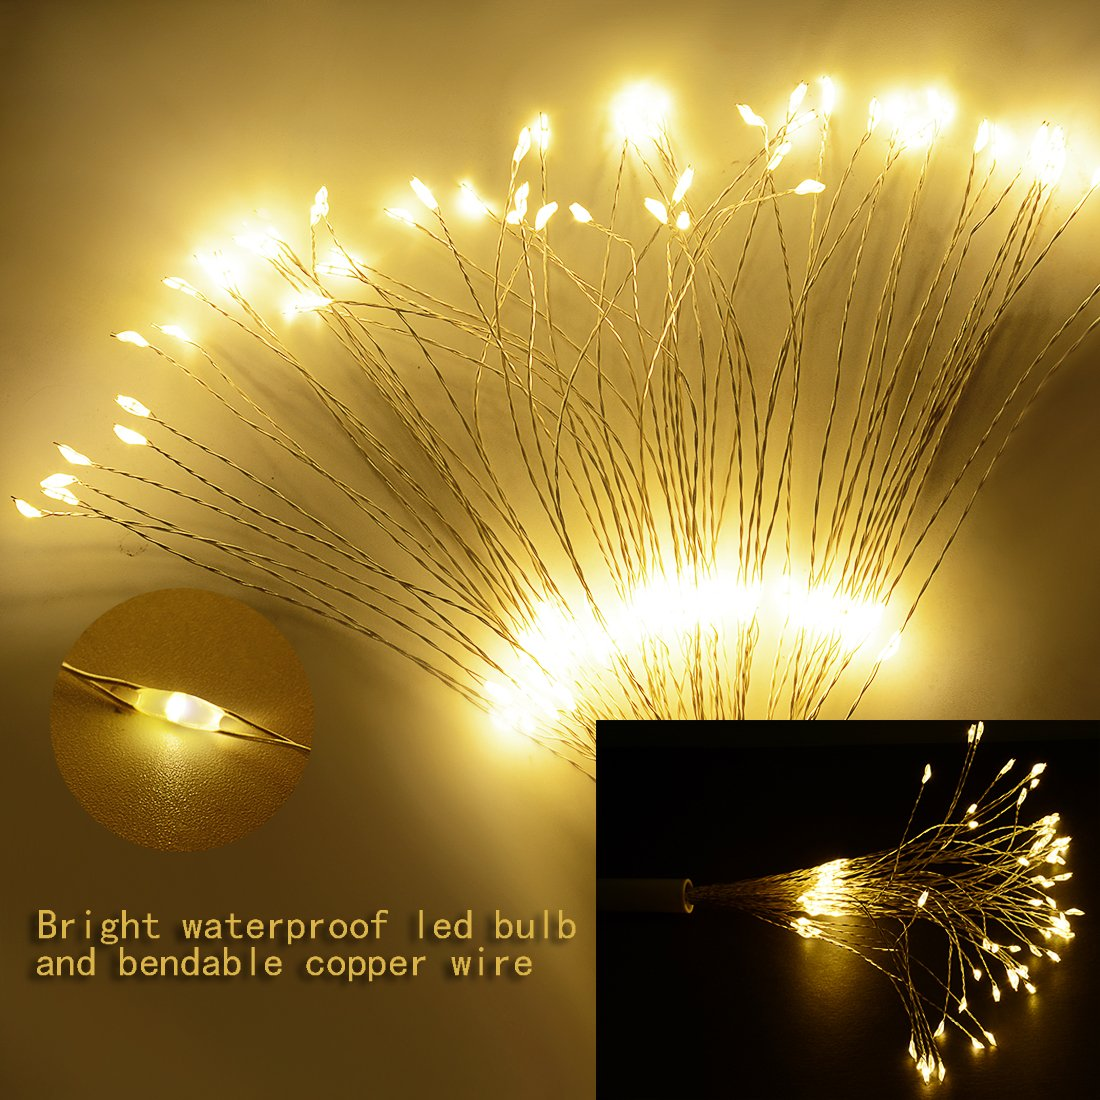 LED String Light,2 Pack Battery Operated Hanging Starburst Light 120 LED Bouquet Shape lights,Fairy Twinkle Light 8 Modes Dimmable with Remote Control,Decoration for Outdoor Home Patio(Warm White) by Elitlife (Image #5)